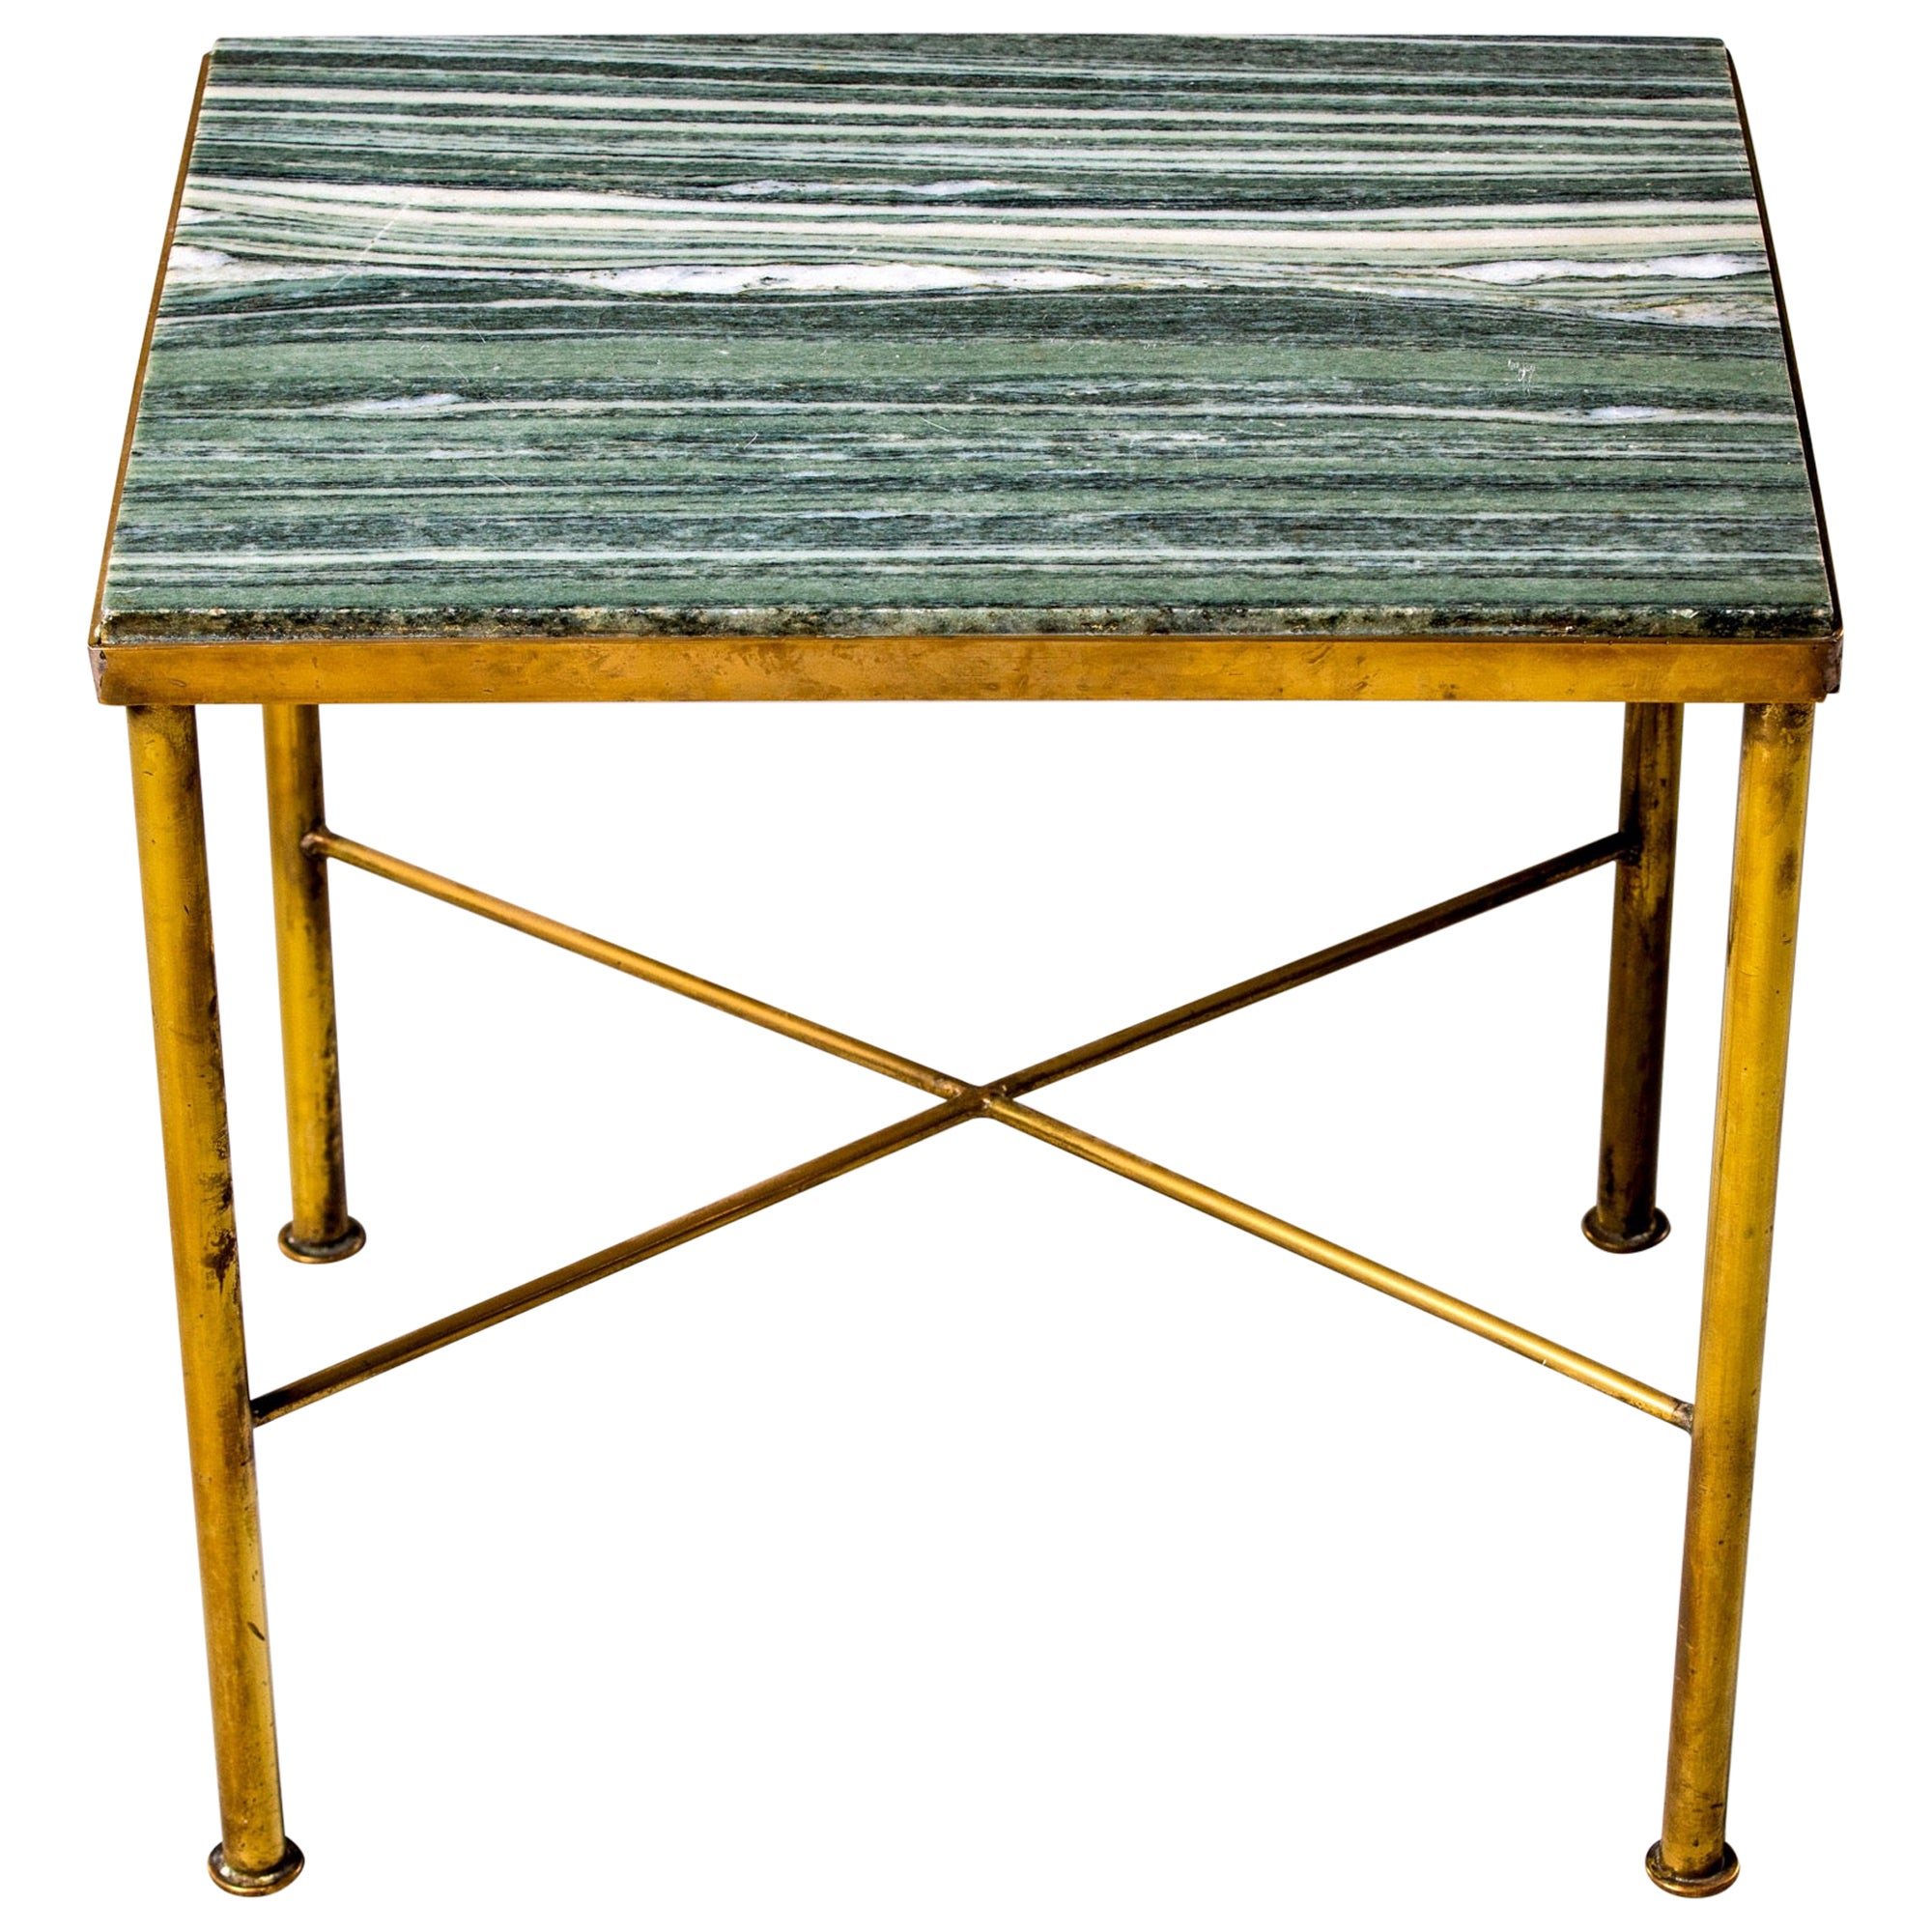 Midcentury Green Marble and Brass Side Table